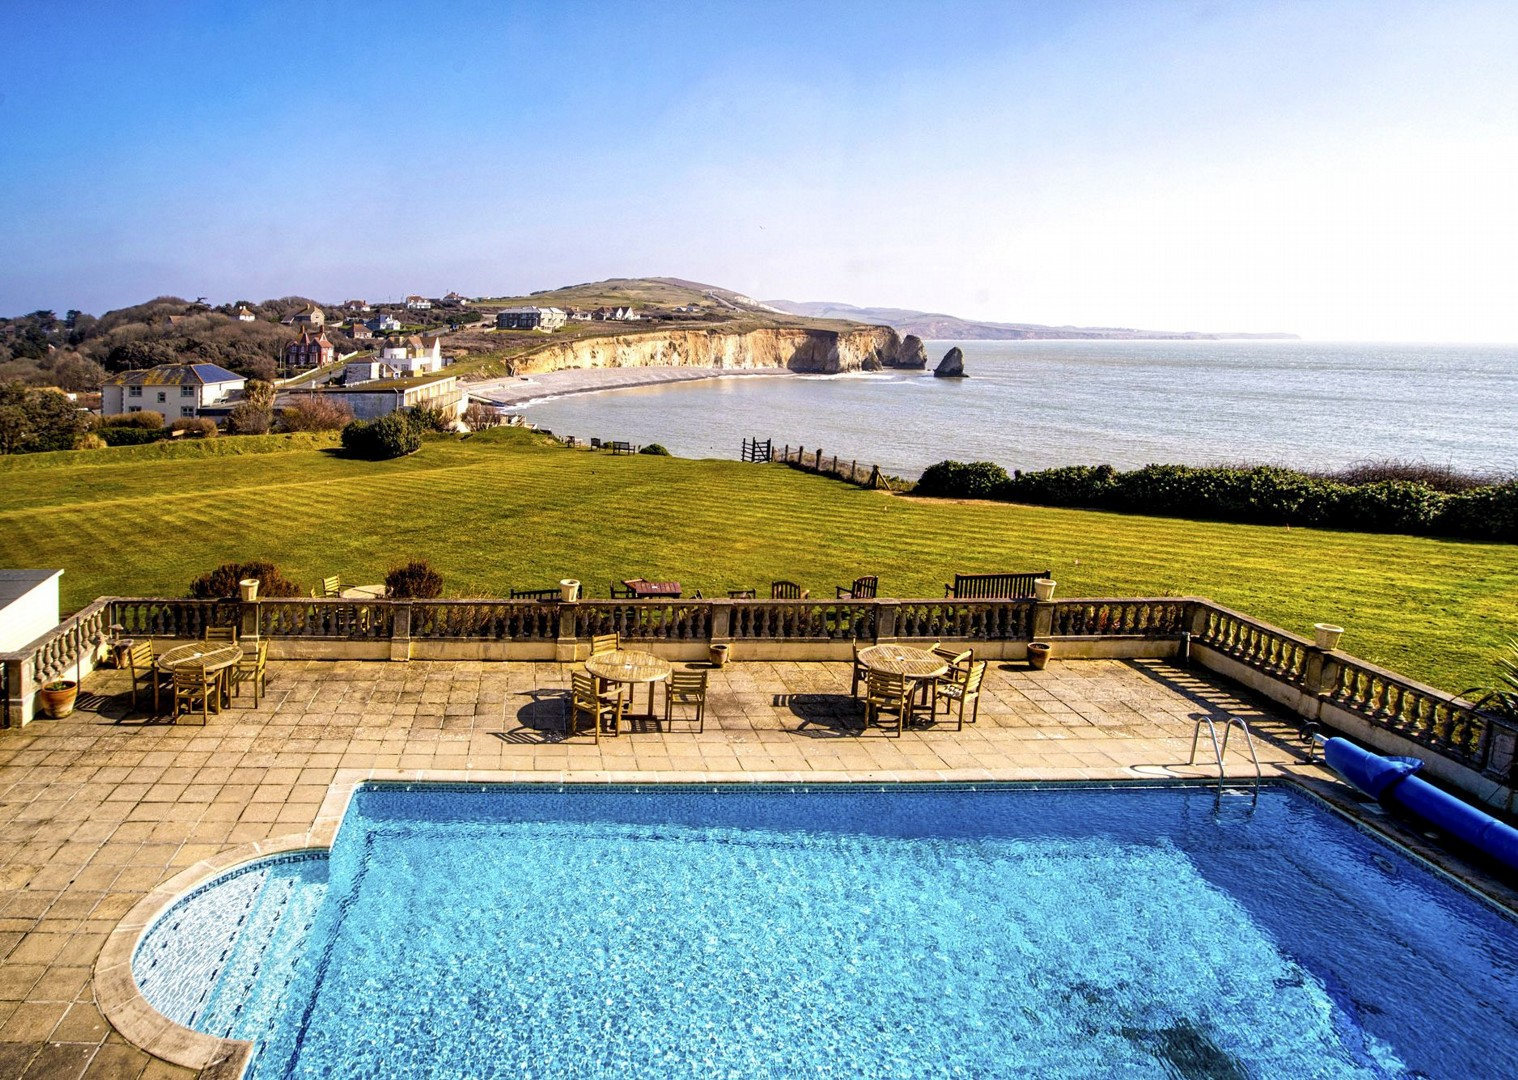 high-quality-accommodation-hf-country-house-pool-cycling-holiday.jpg - UK - Isle of Wight - Freshwater Bay - Self-Guided Leisure Cycling Holiday - Leisure Cycling